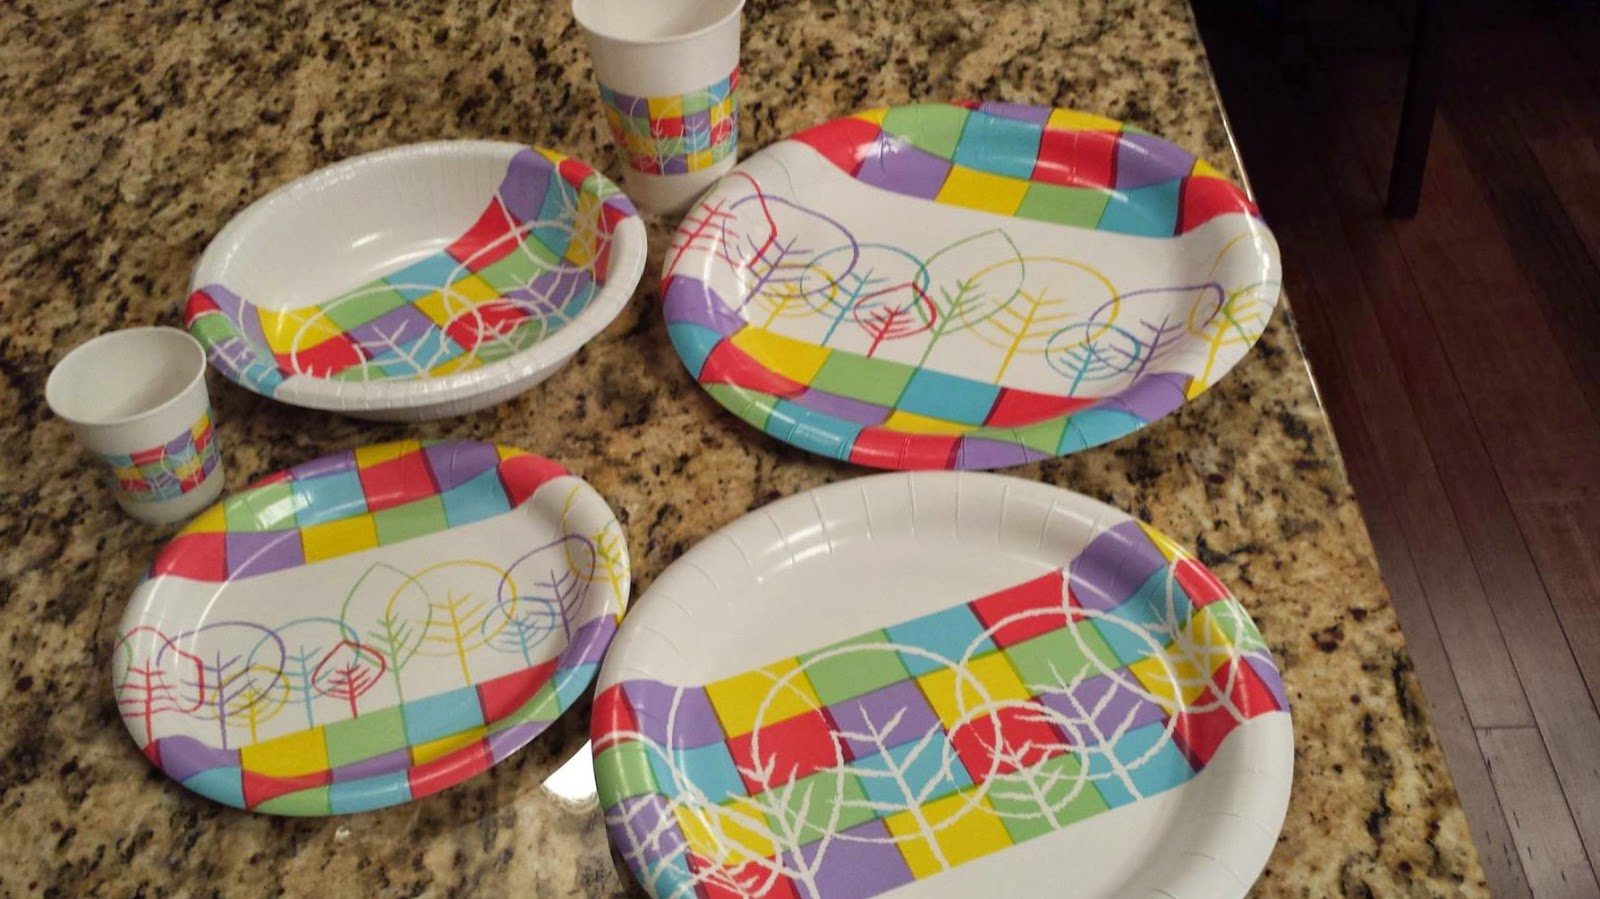 I\u0027m ready to whip up a macaroni salad and show off my really super cool new paper plates. & Lookin\u0027 Up: Designer Paper Plates